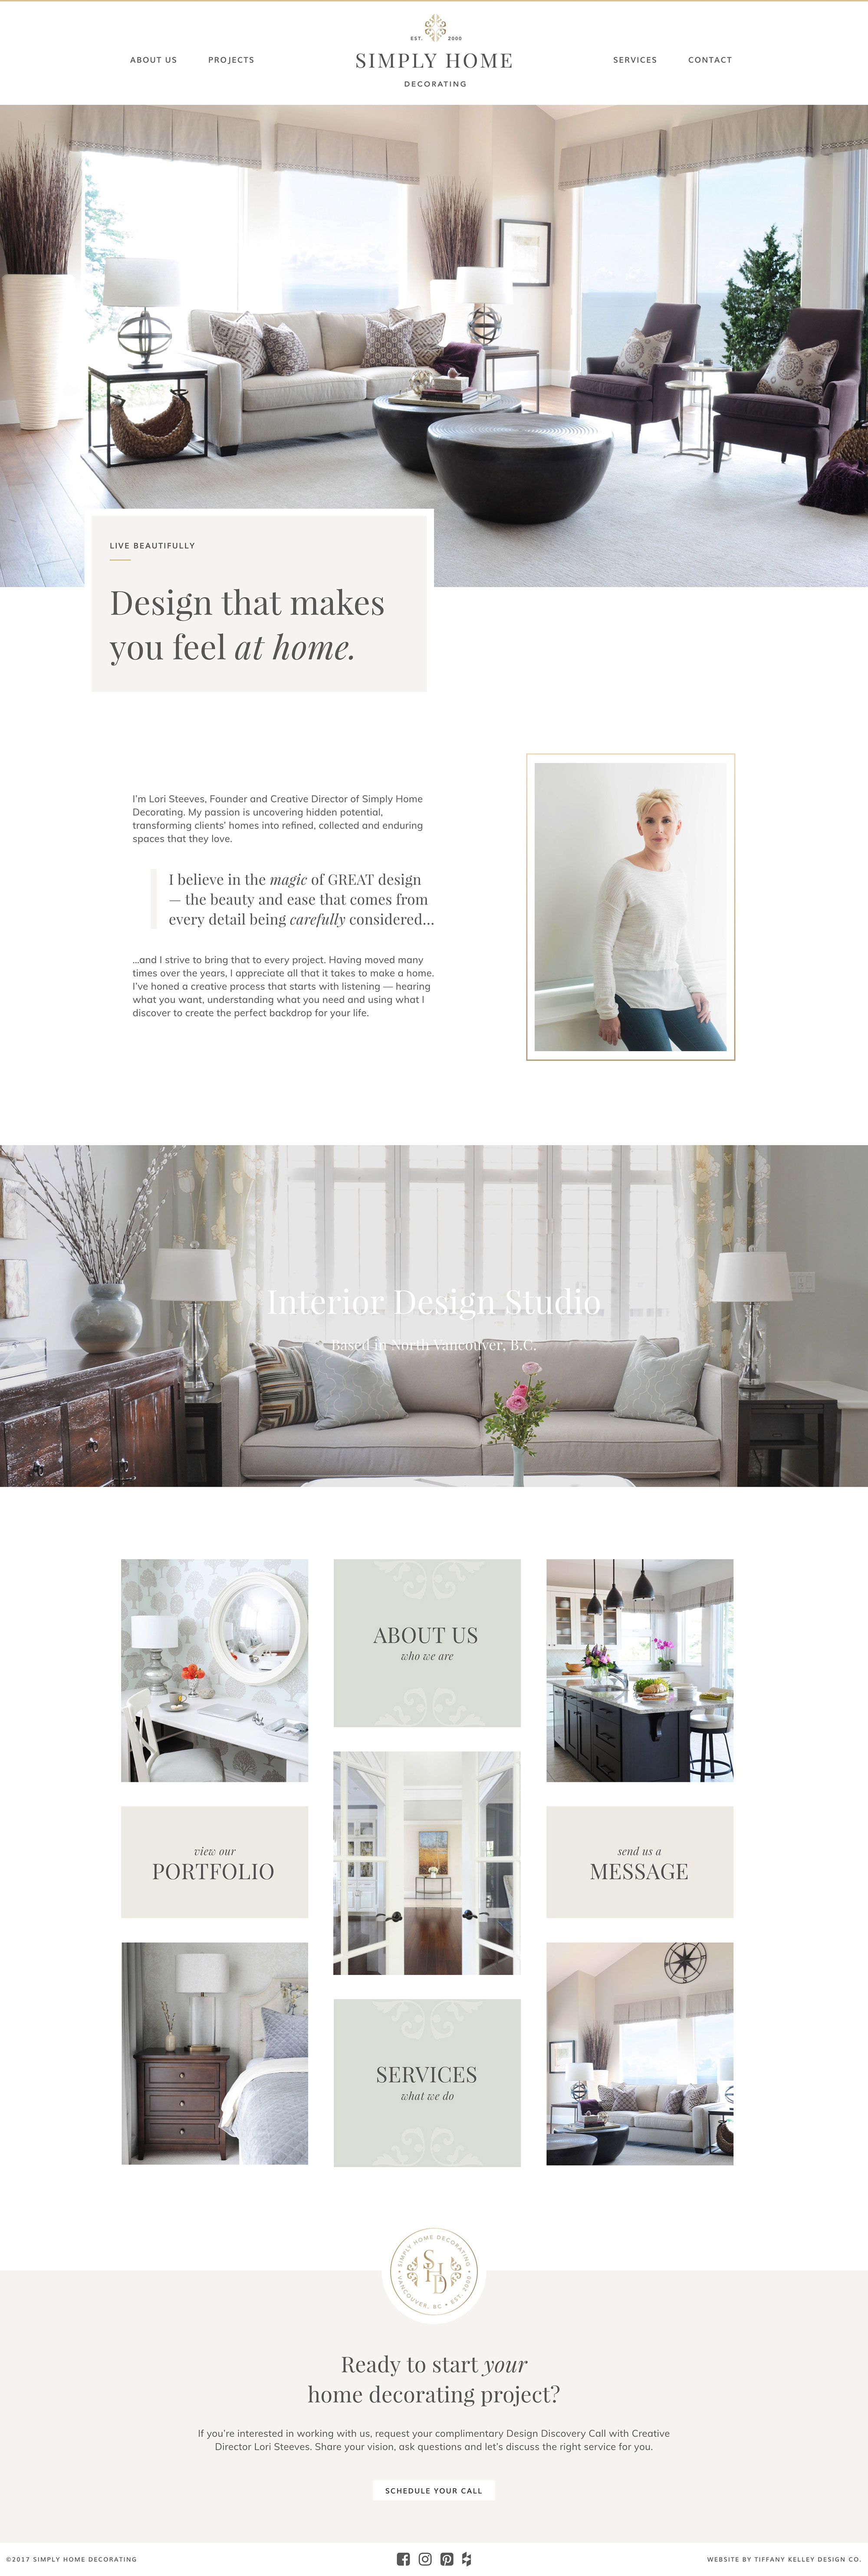 home web design simply home decorating